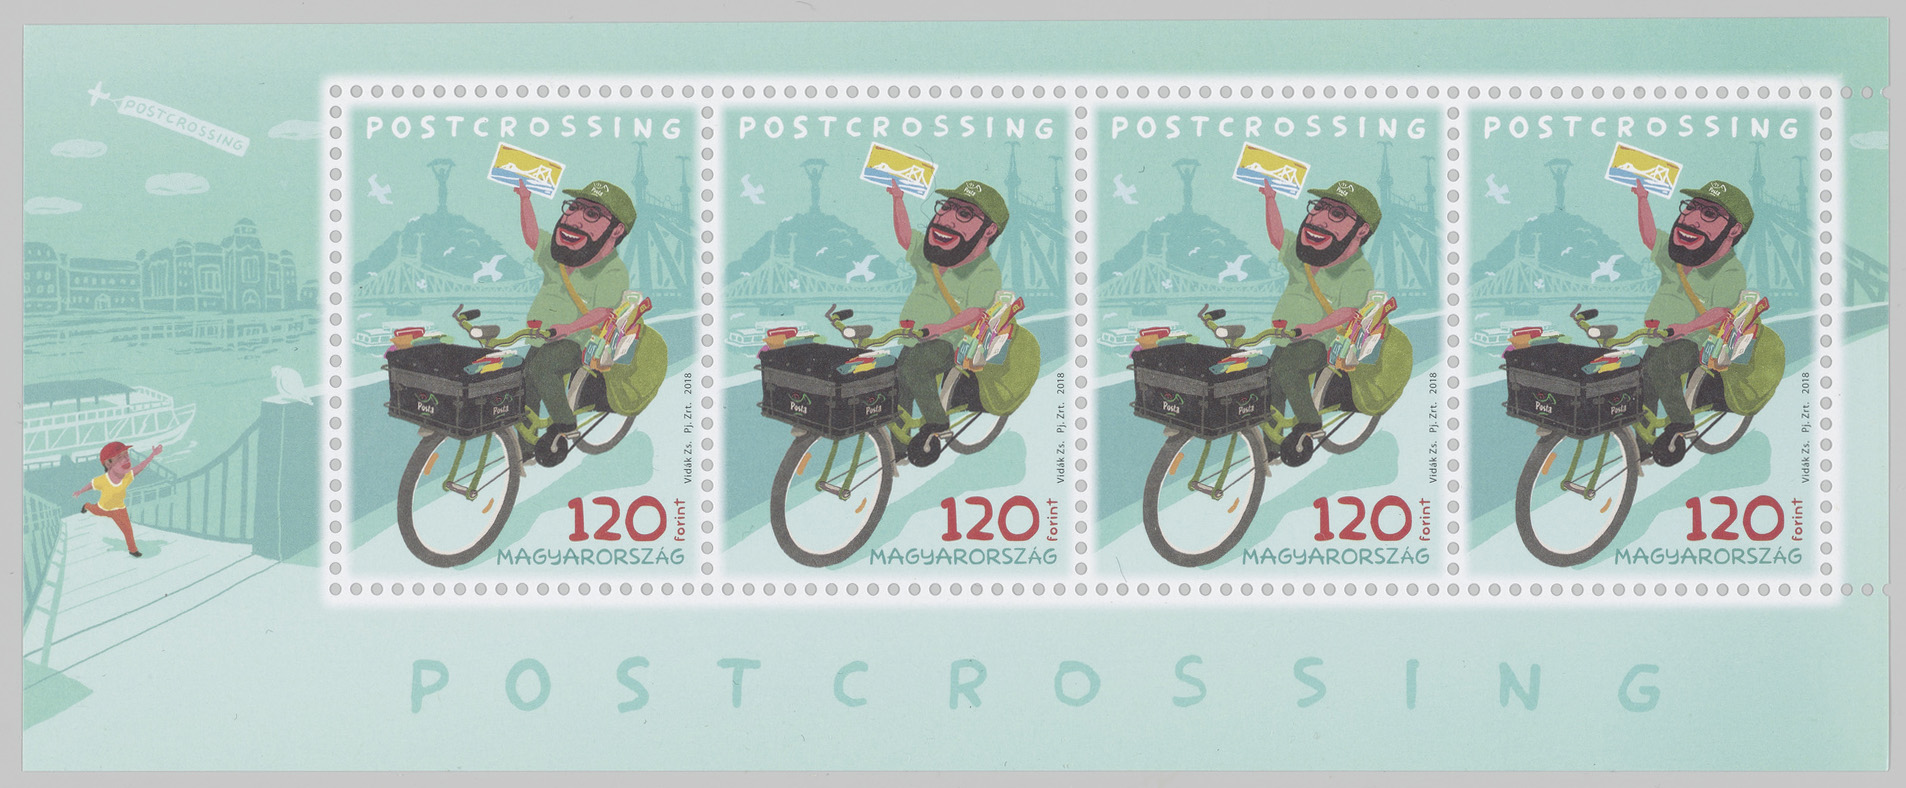 A miniature sheet of four stamps featuring a postal worker on a bike with a postcard in their hand.